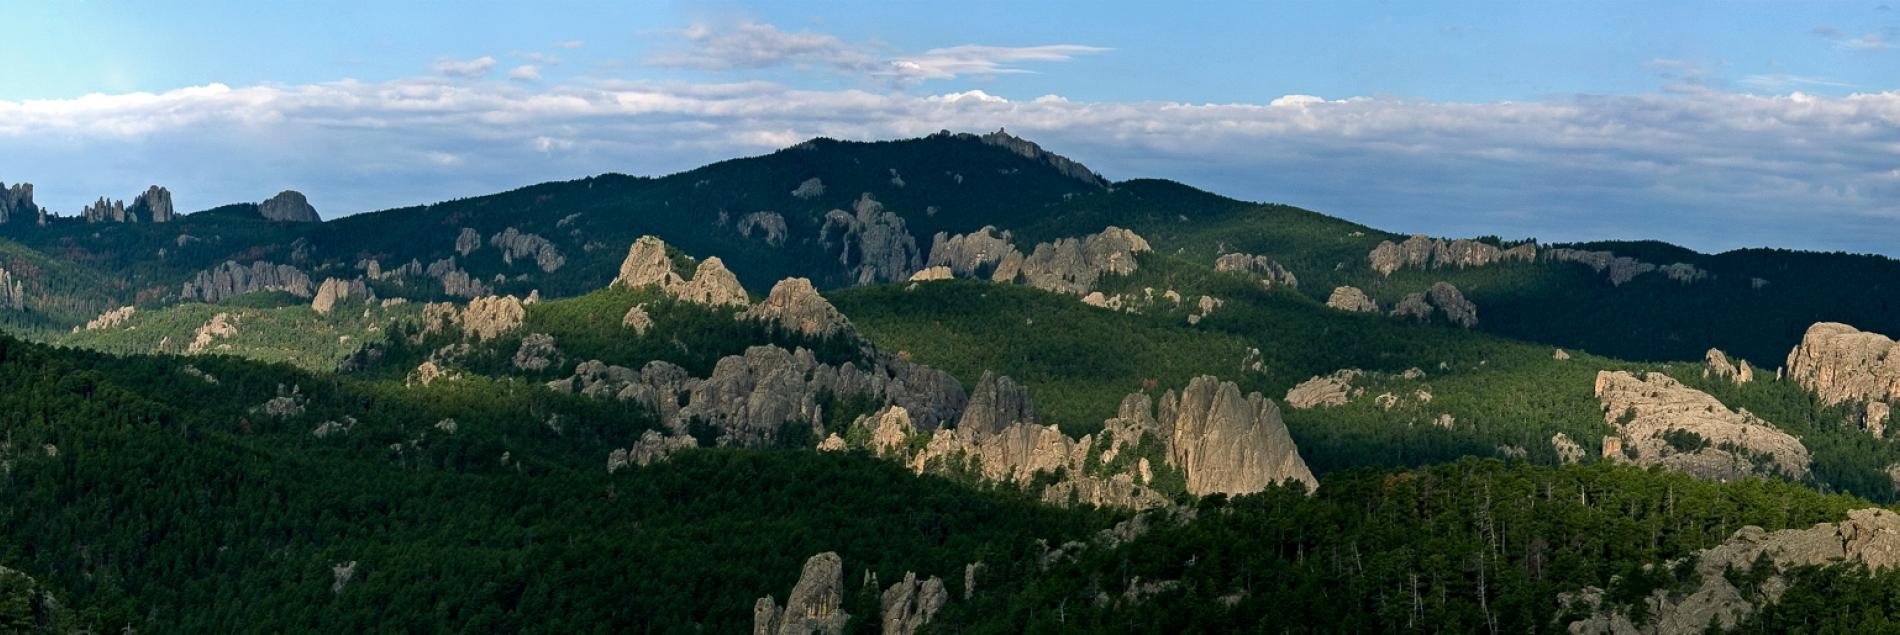 Black Hills National Forest Black Hills Badlands South Dakota